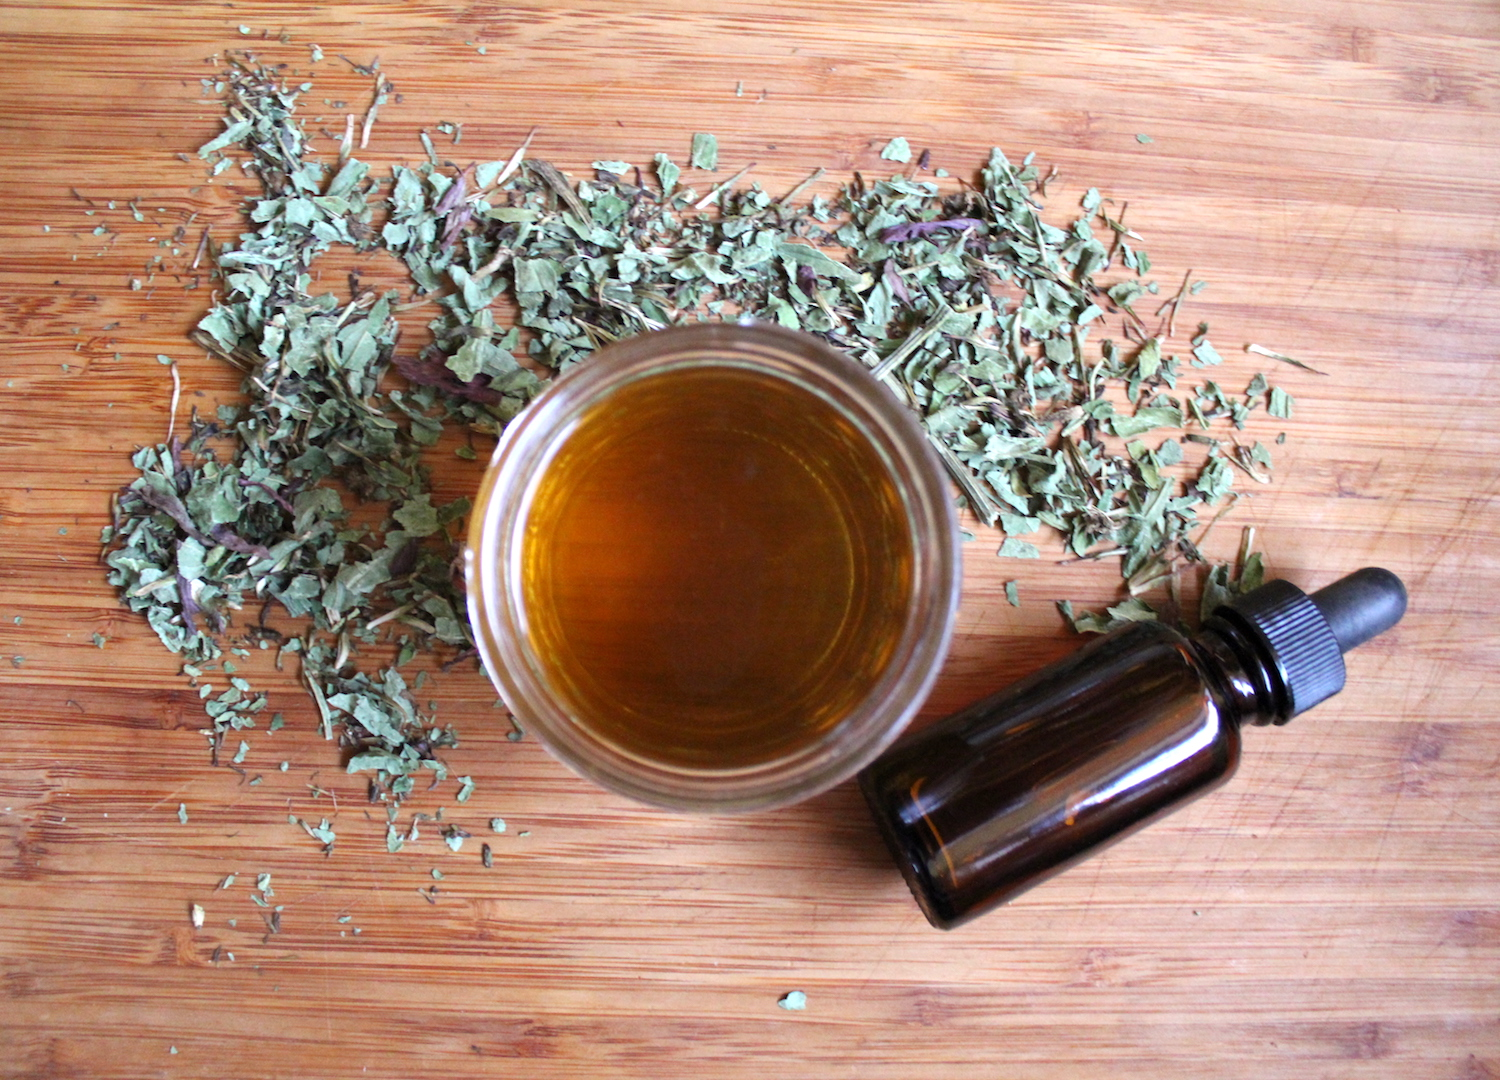 How to Take an Herbal Tincture